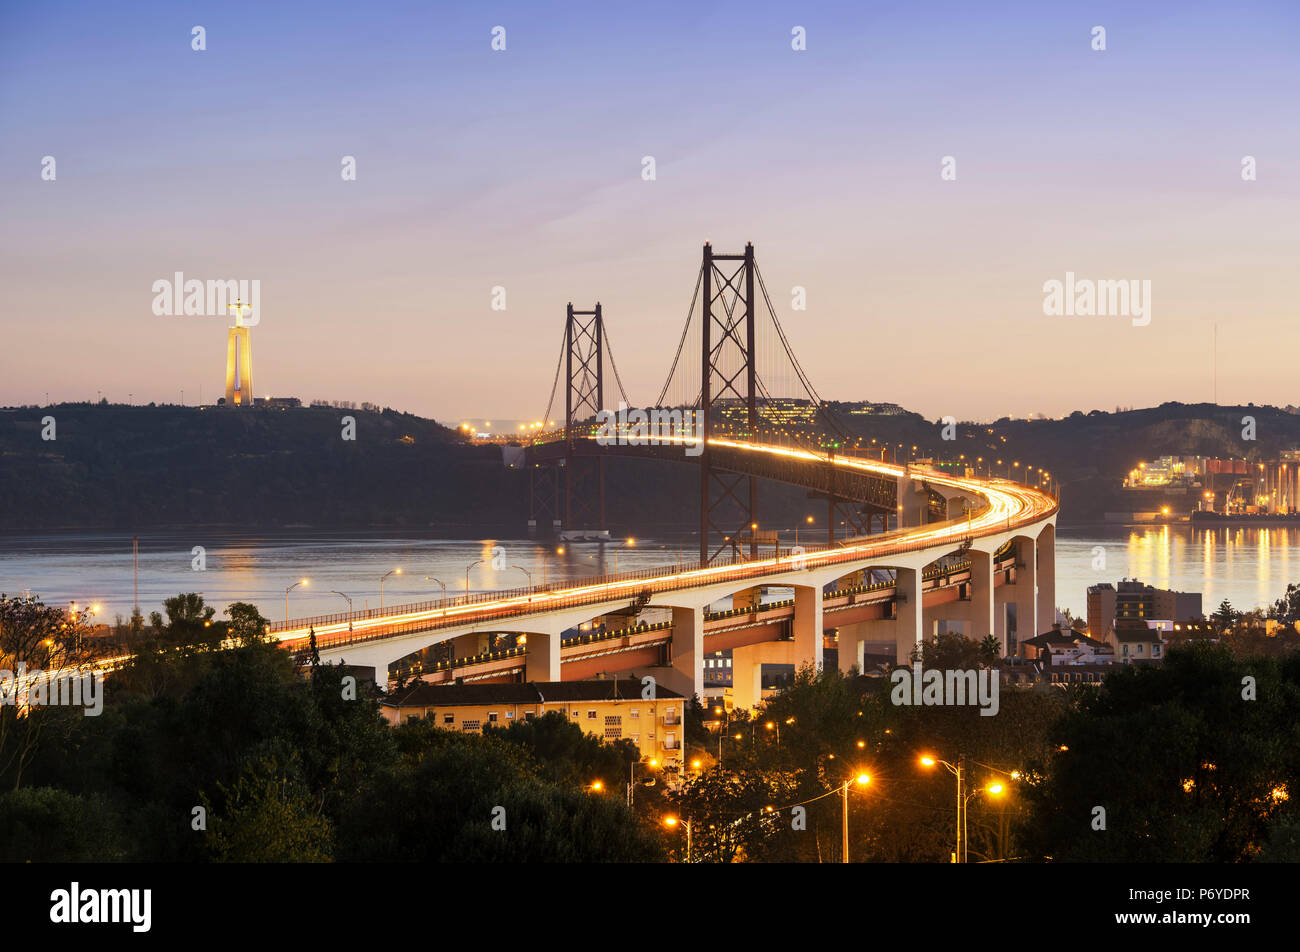 25 de April bridge (similar to the Golden Gate bridge) across the Tagus river and Cristo Rei (Christ the King) on the south bank of the river, in the evening. Lisbon, Portugal - Stock Image